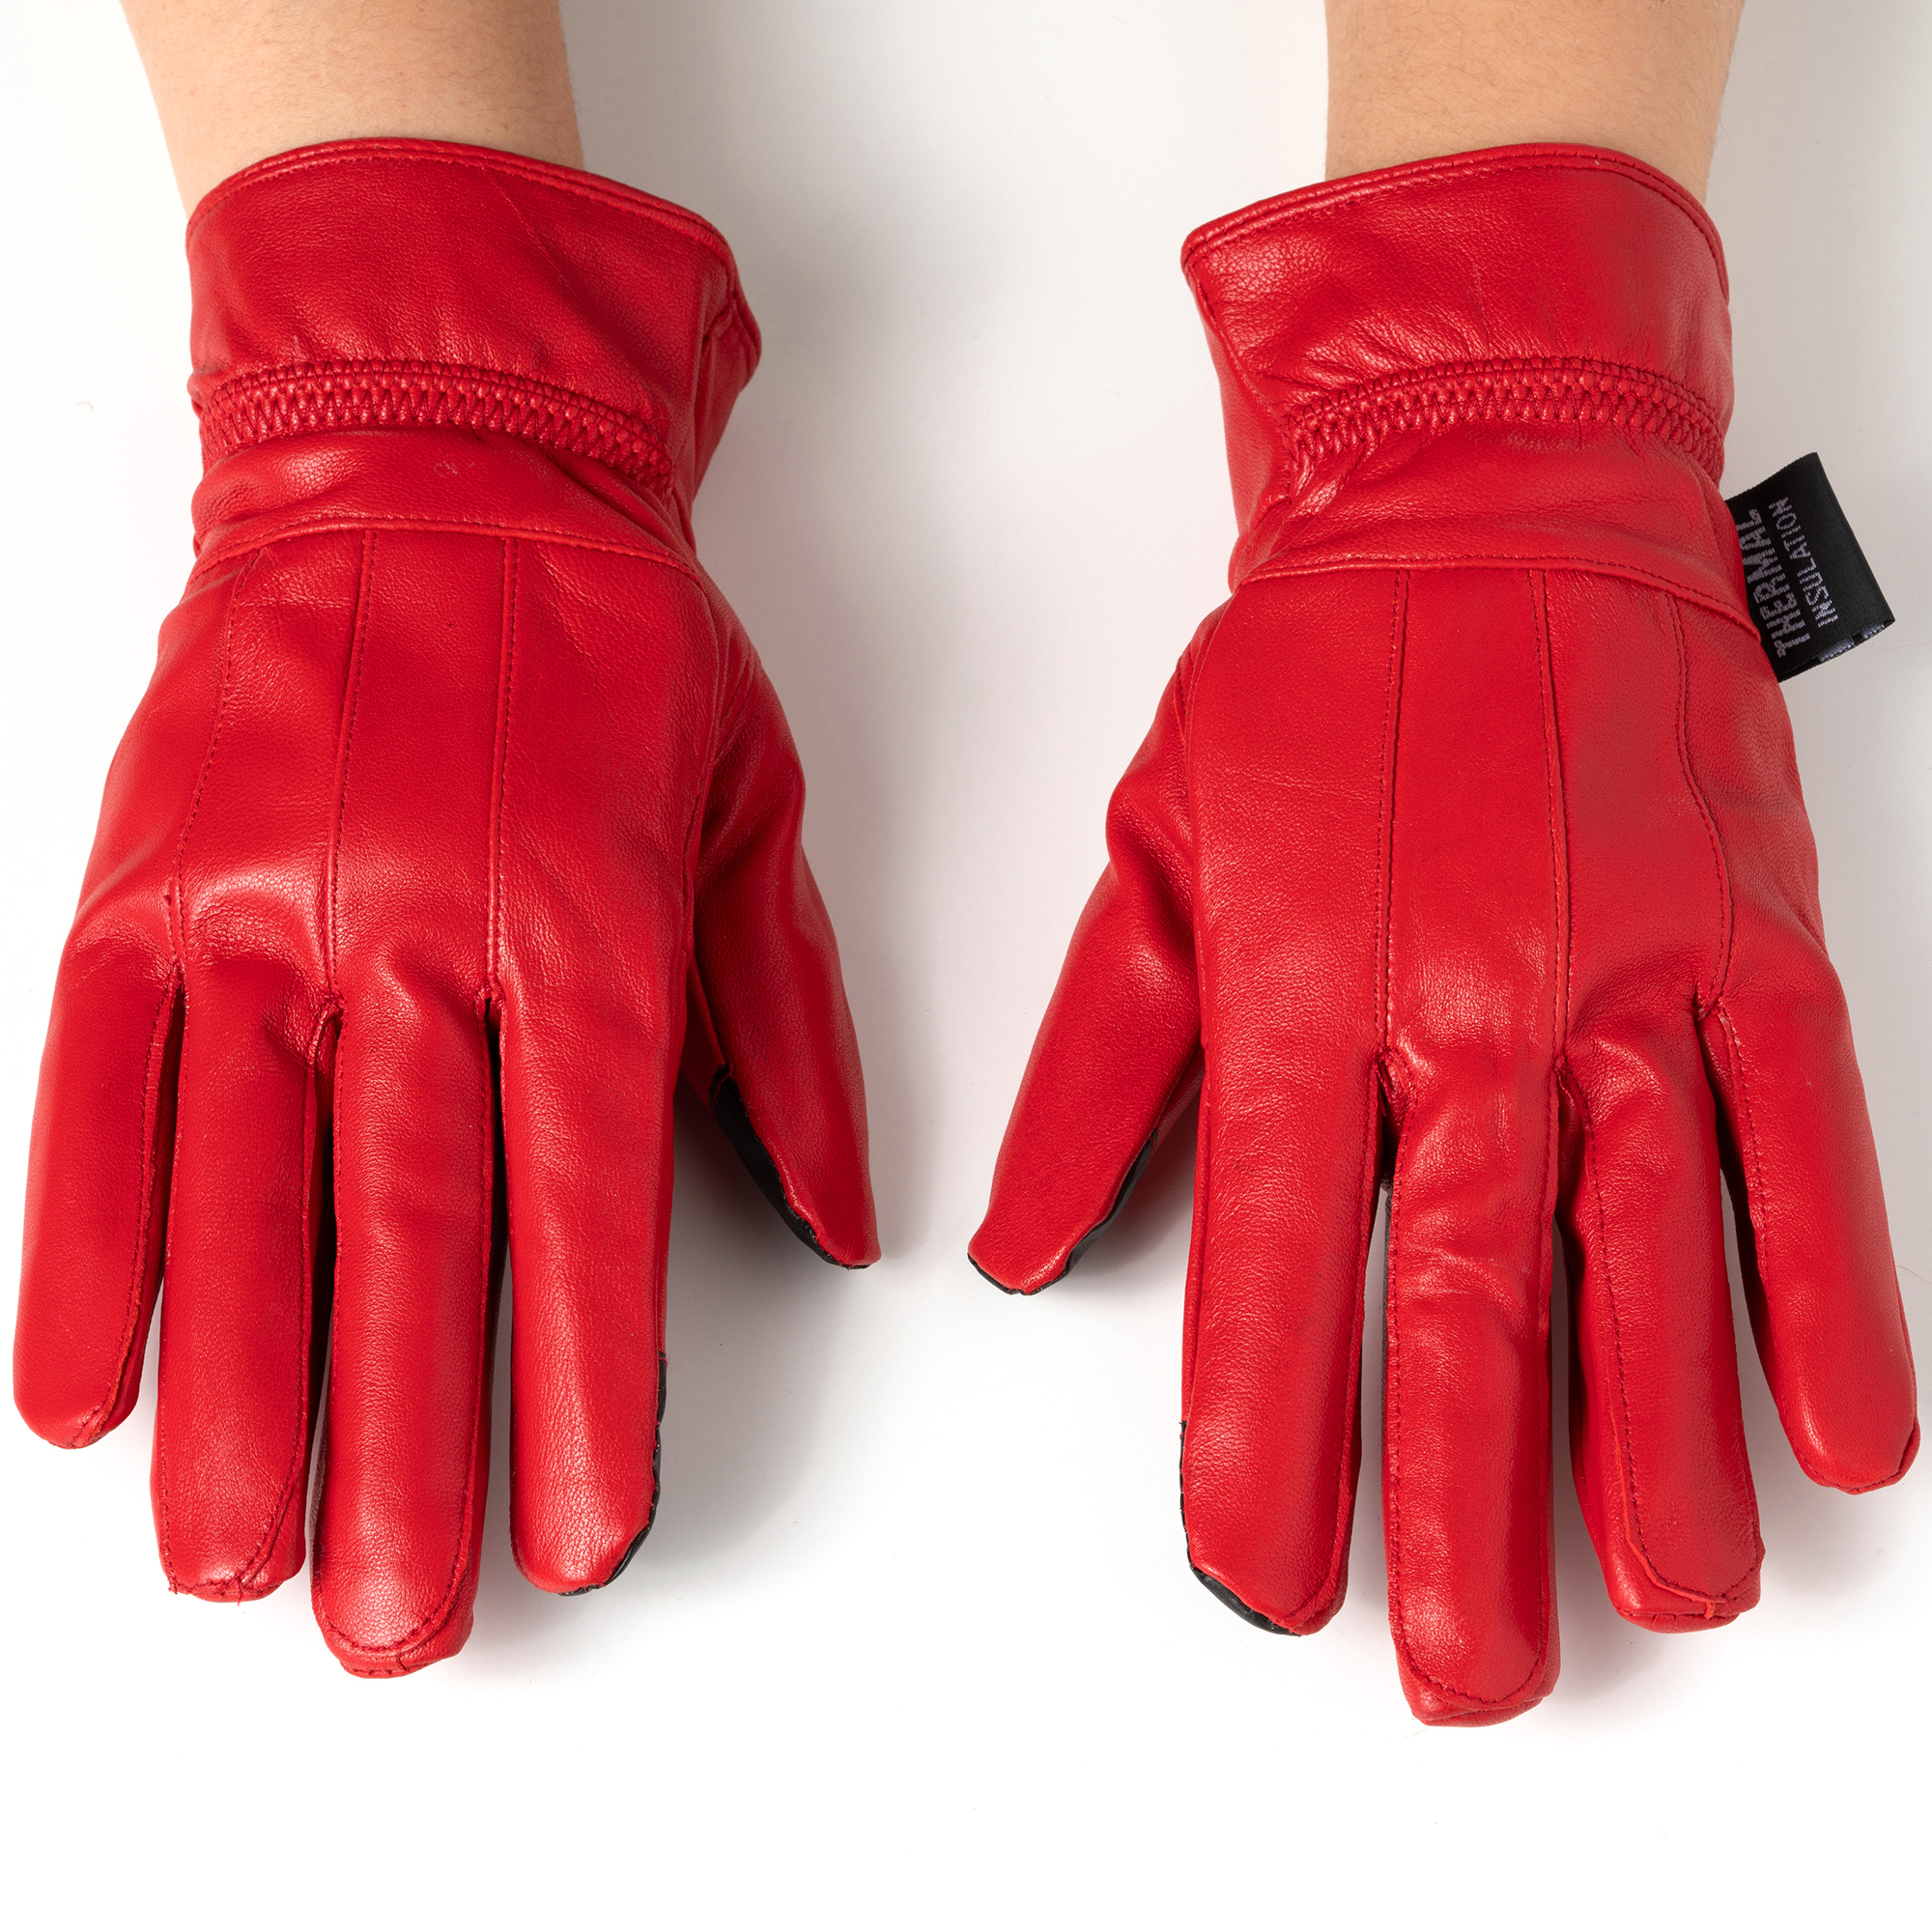 Alpine-Swiss-Womens-Touch-Screen-Gloves-Leather-Phone-Texting-Glove-Thermal-Warm thumbnail 31